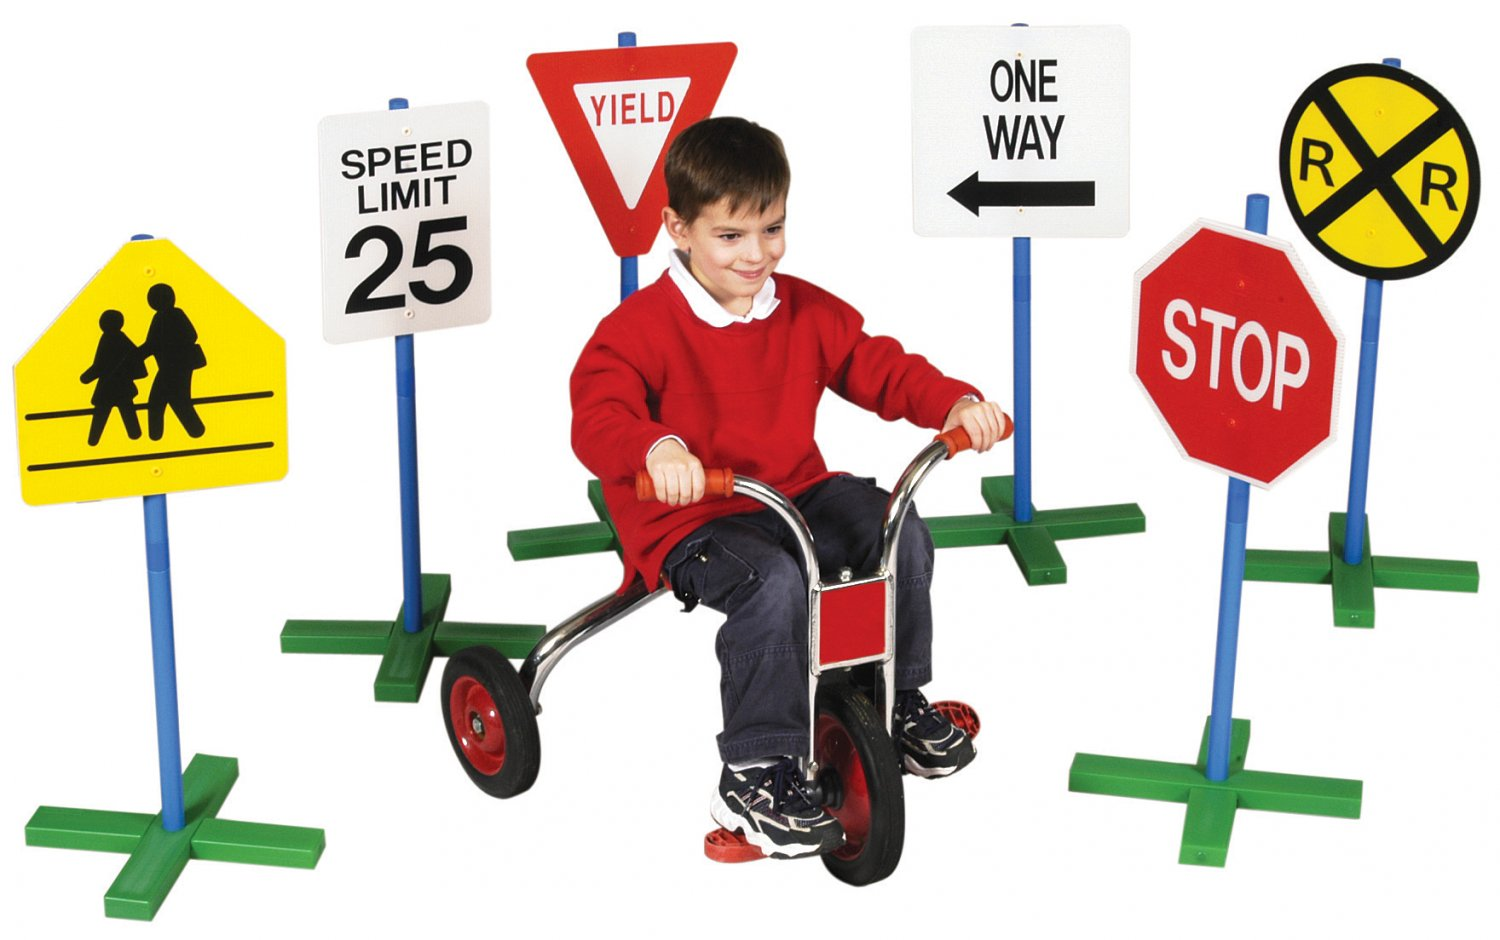 Pretend Play 6 Driving Signs Great For Schools To Teach